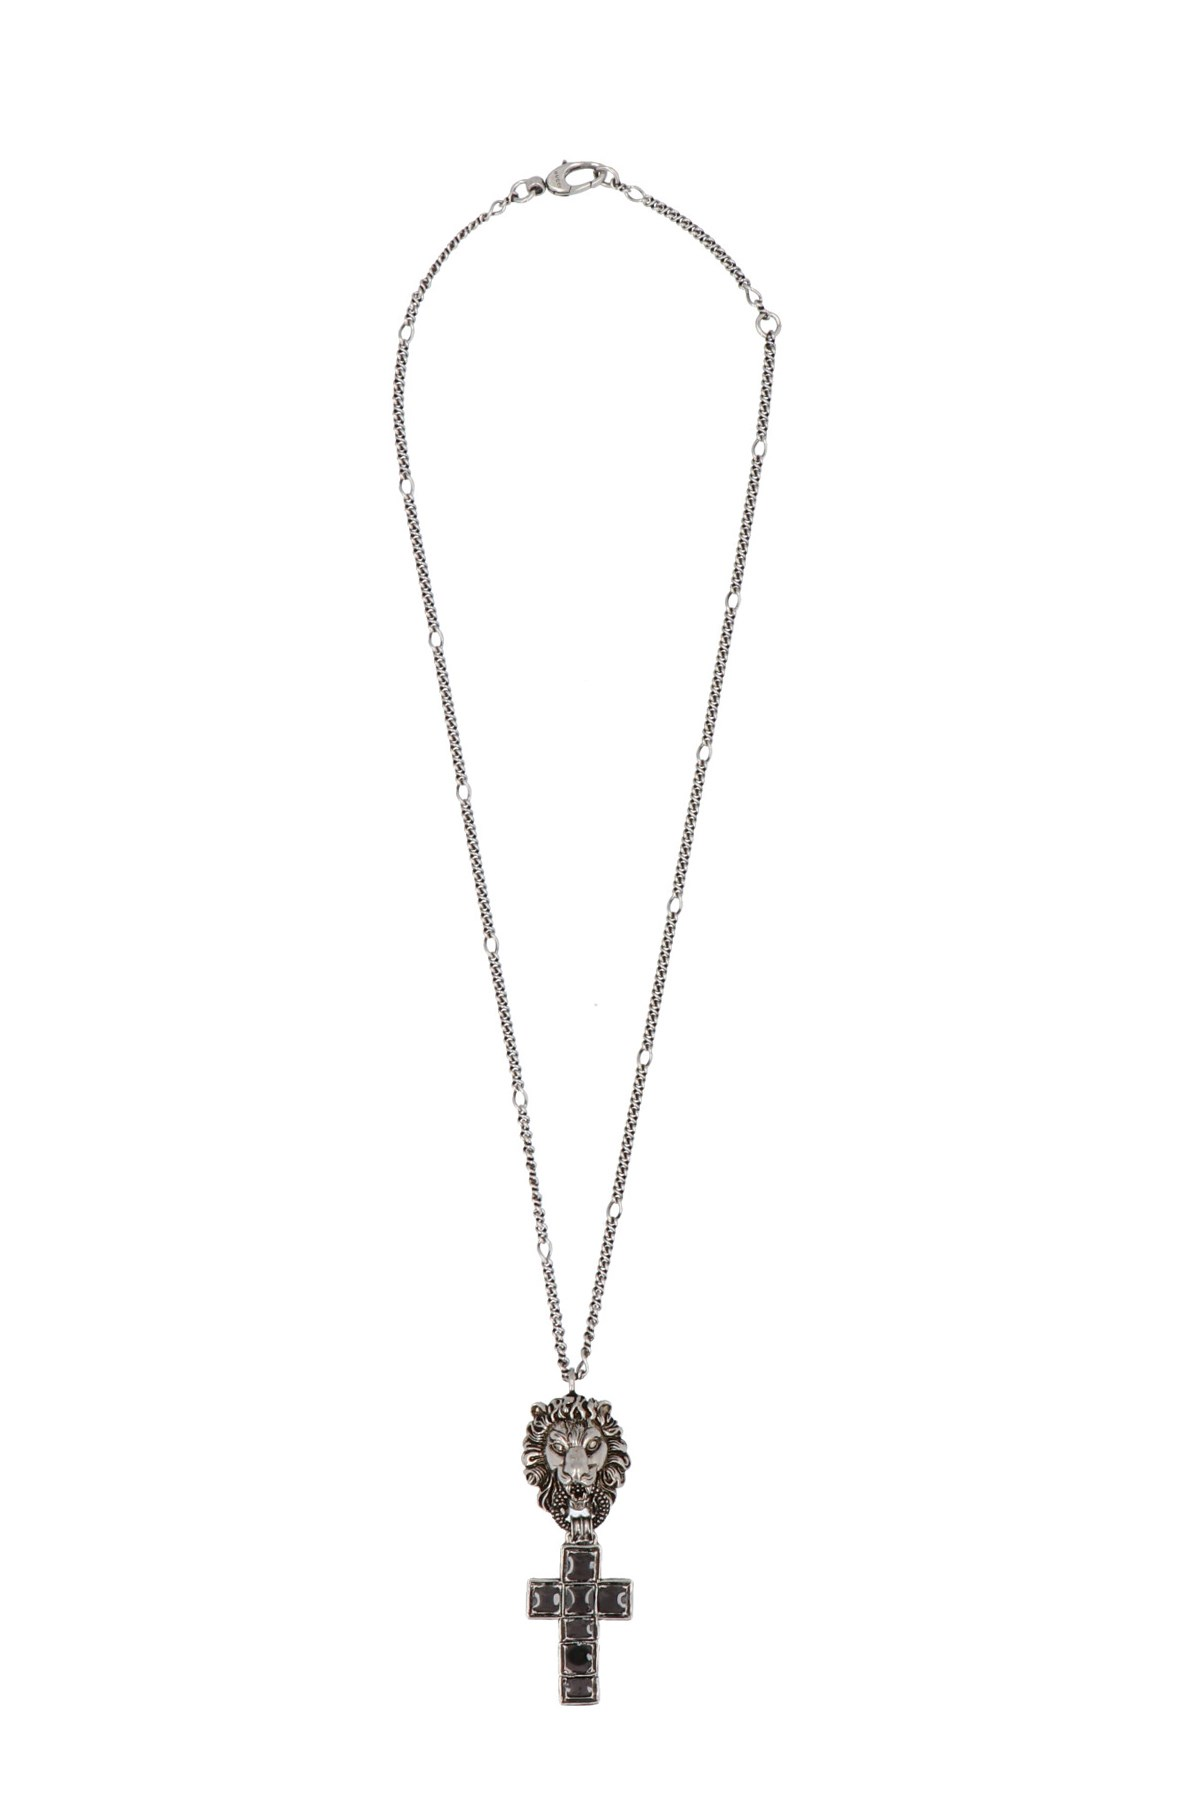 c73cde34dbca0a gucci Lion head necklace available on julian-fashion.com - 91779